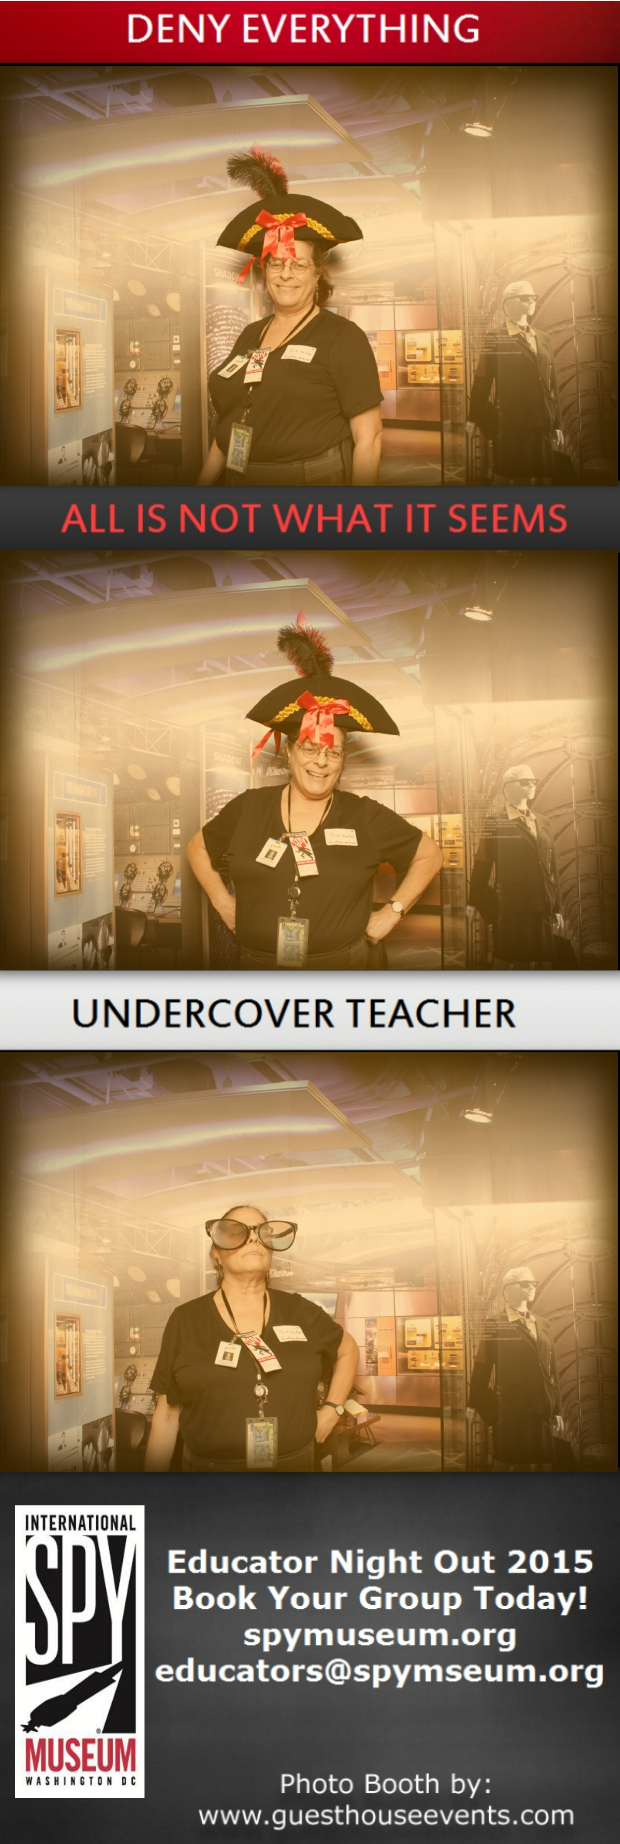 Guest House Events Photo Booth Spy Museum Educator Night Out (20).jpg